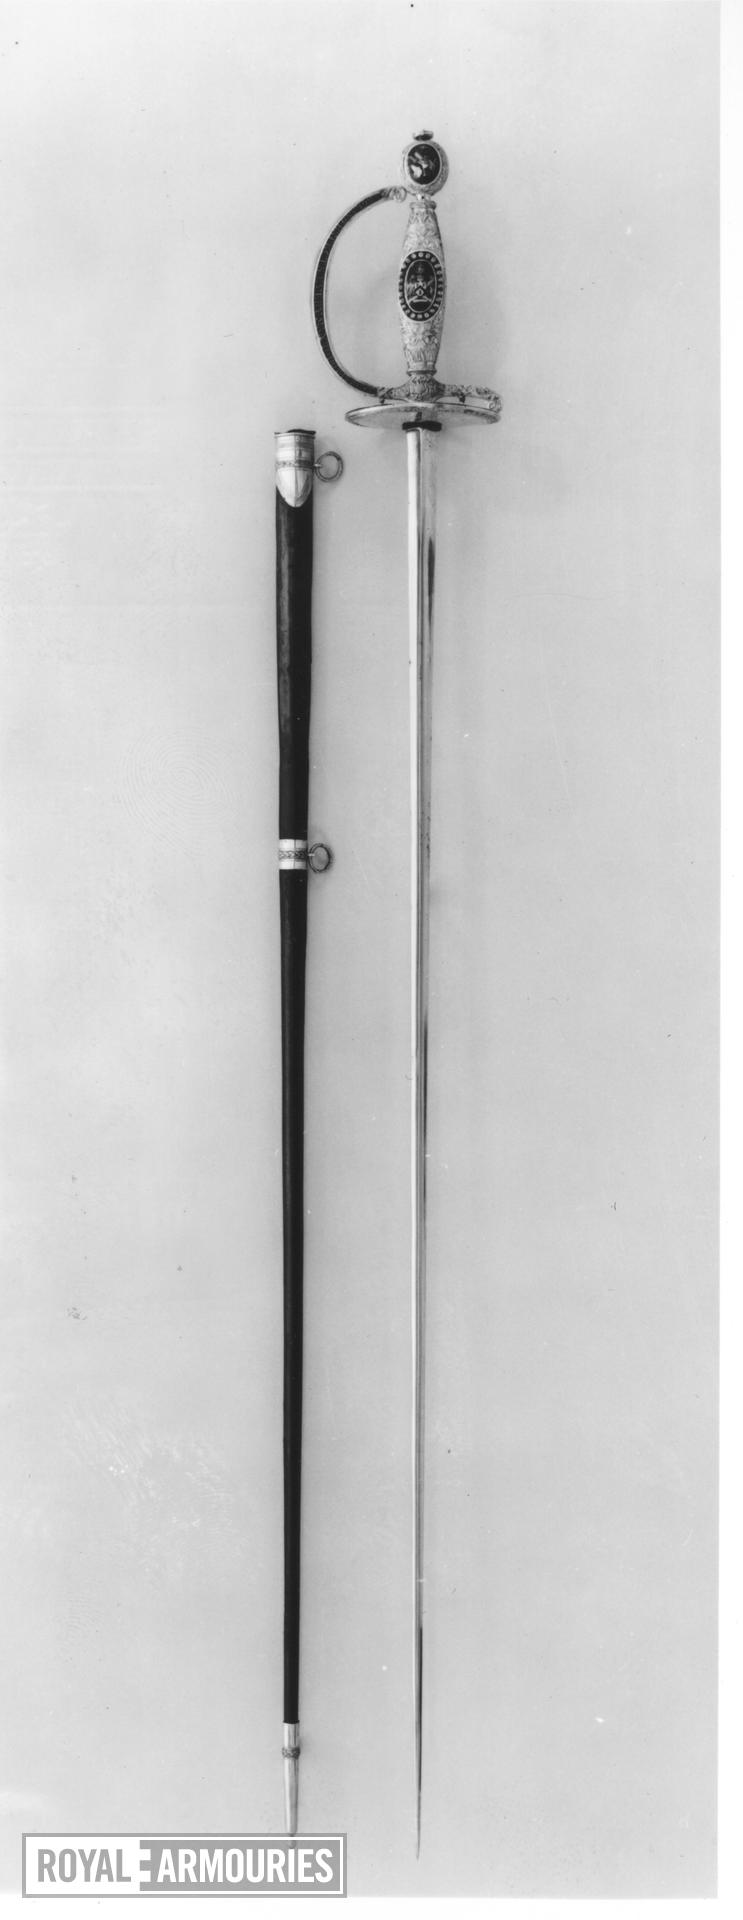 Sword and scabbard Small sword and scabbard. Presentation sword to Lord Collingwood from Corporation of the City of London, inscription giving the date 26.11.1805, hallmark with date letter for 1806/7; hilt and scabbard fittings by John Ray and James Montague; retailed by Thomas Harper.